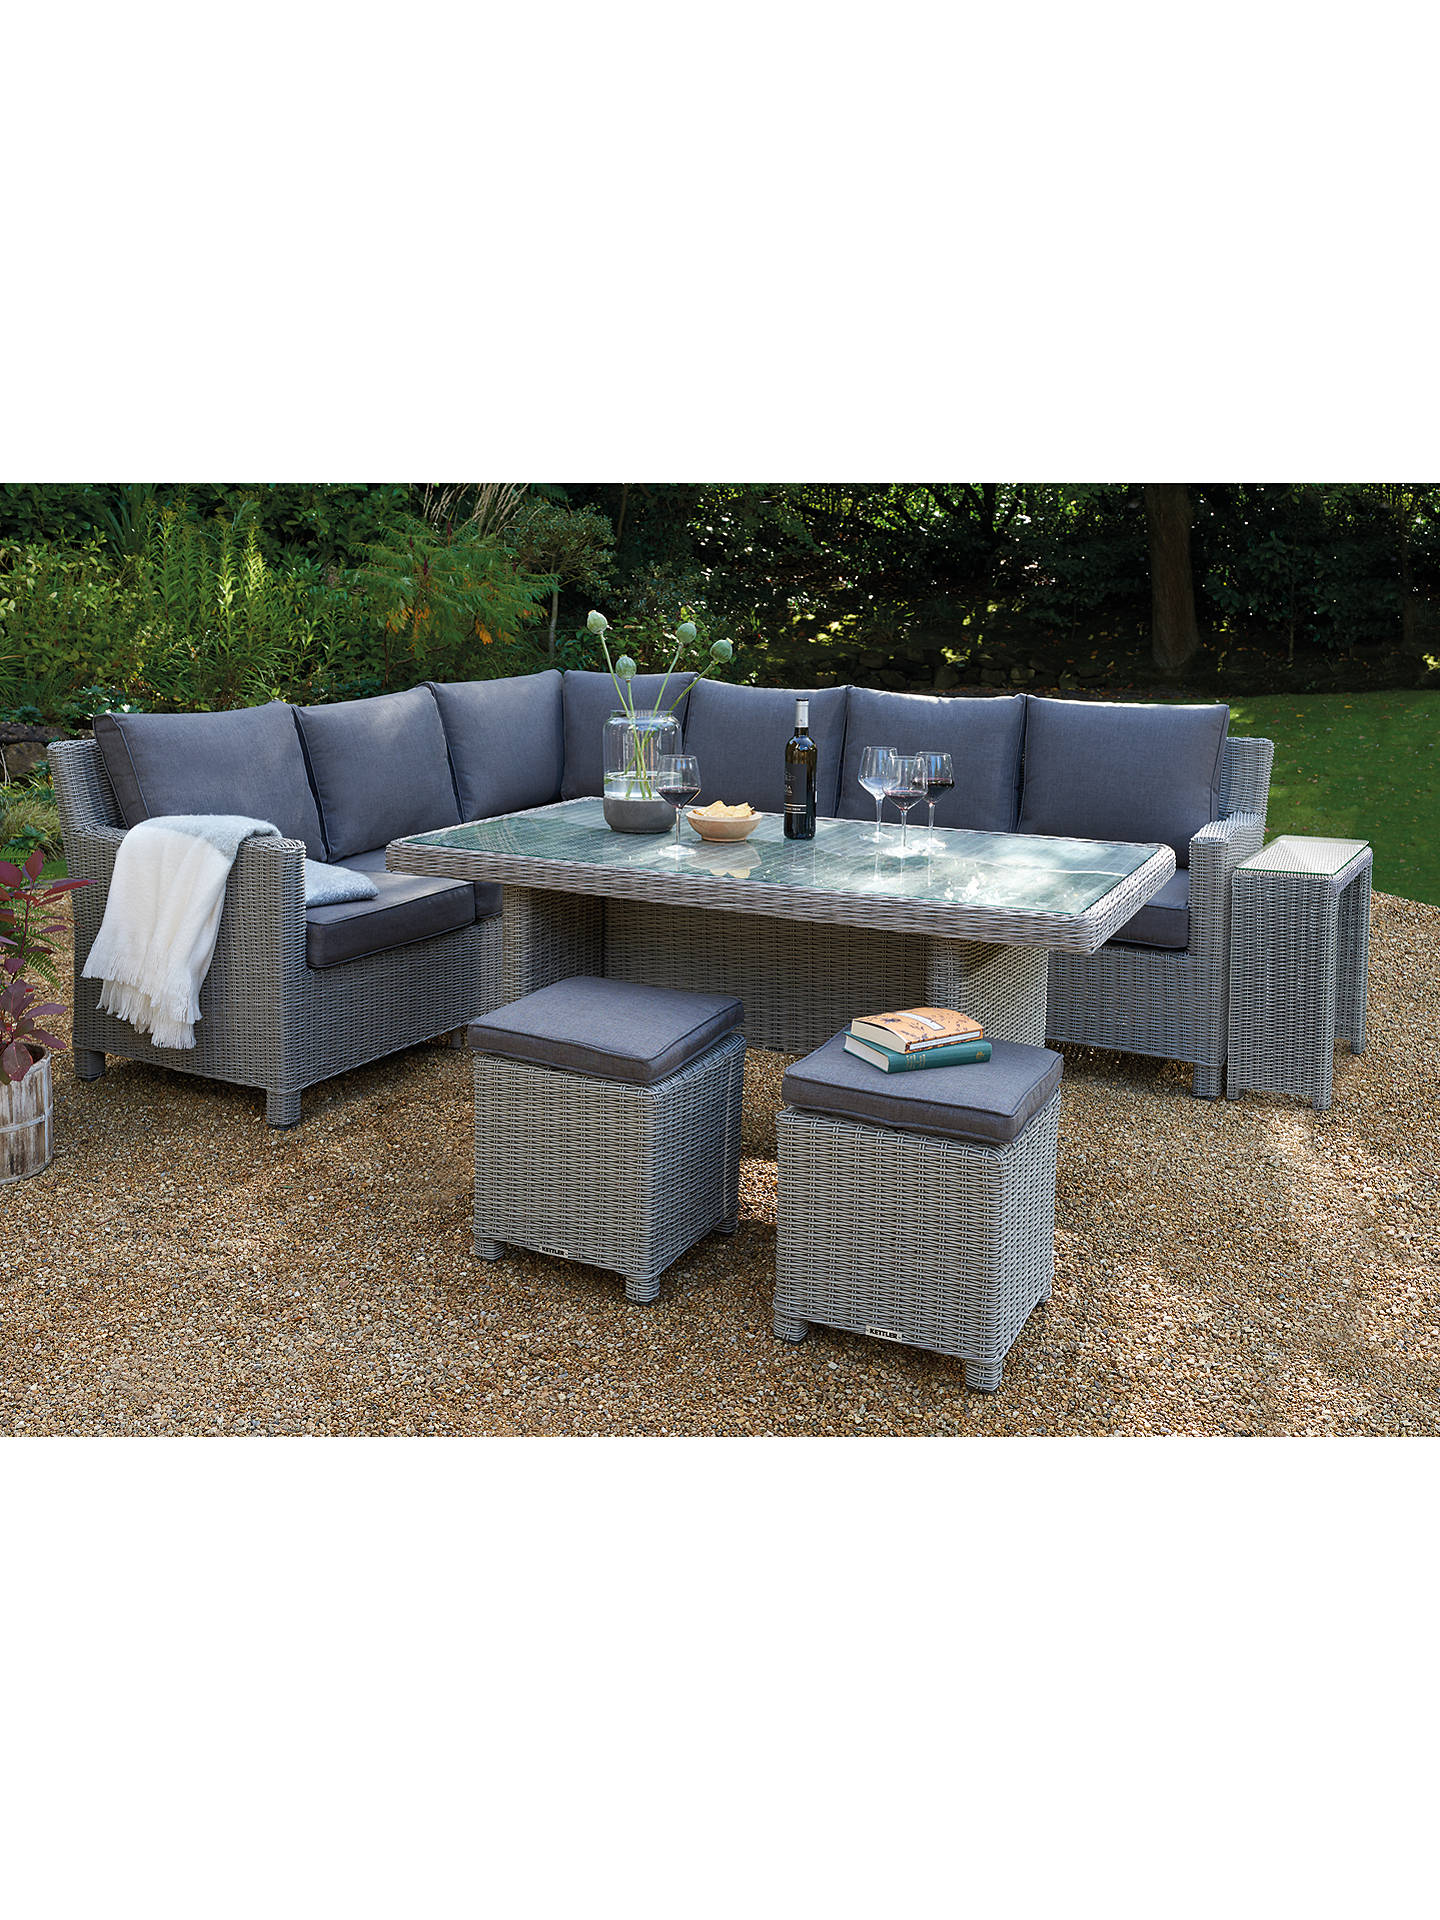 Buy kettler palma 8 seat corner garden glass table chairs lounge set with side table